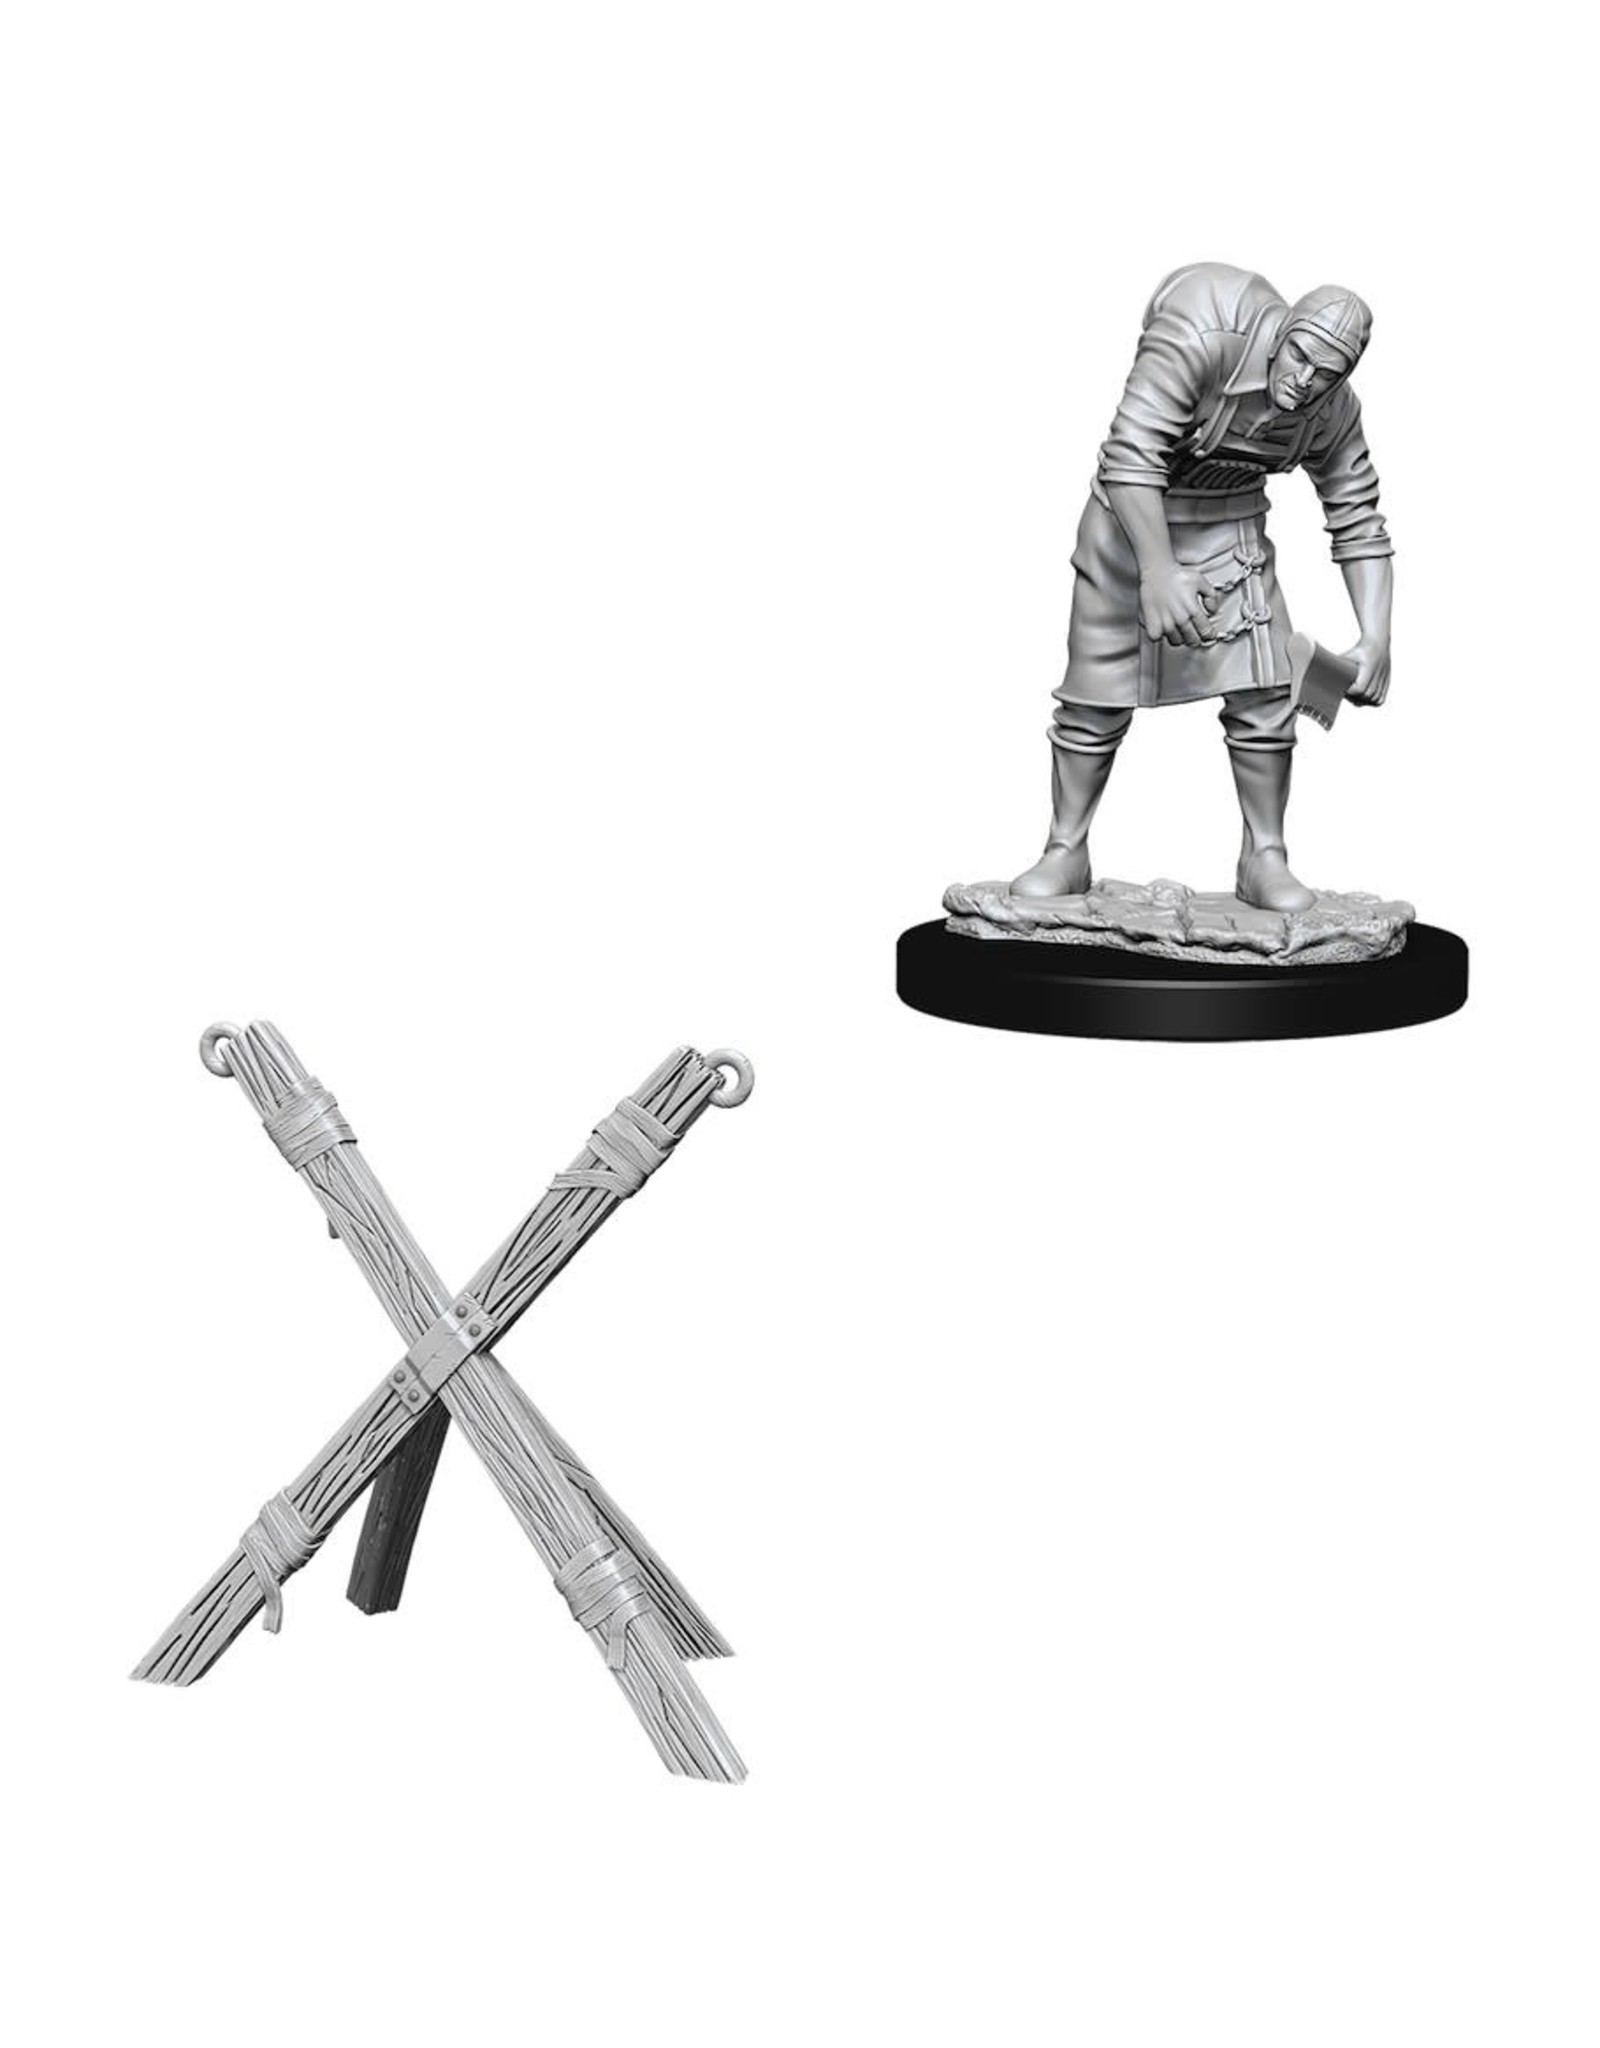 WIZKIDS DEEP CUTS ASSISTANT AND TORTURE CROSS UNPAINTED MINI